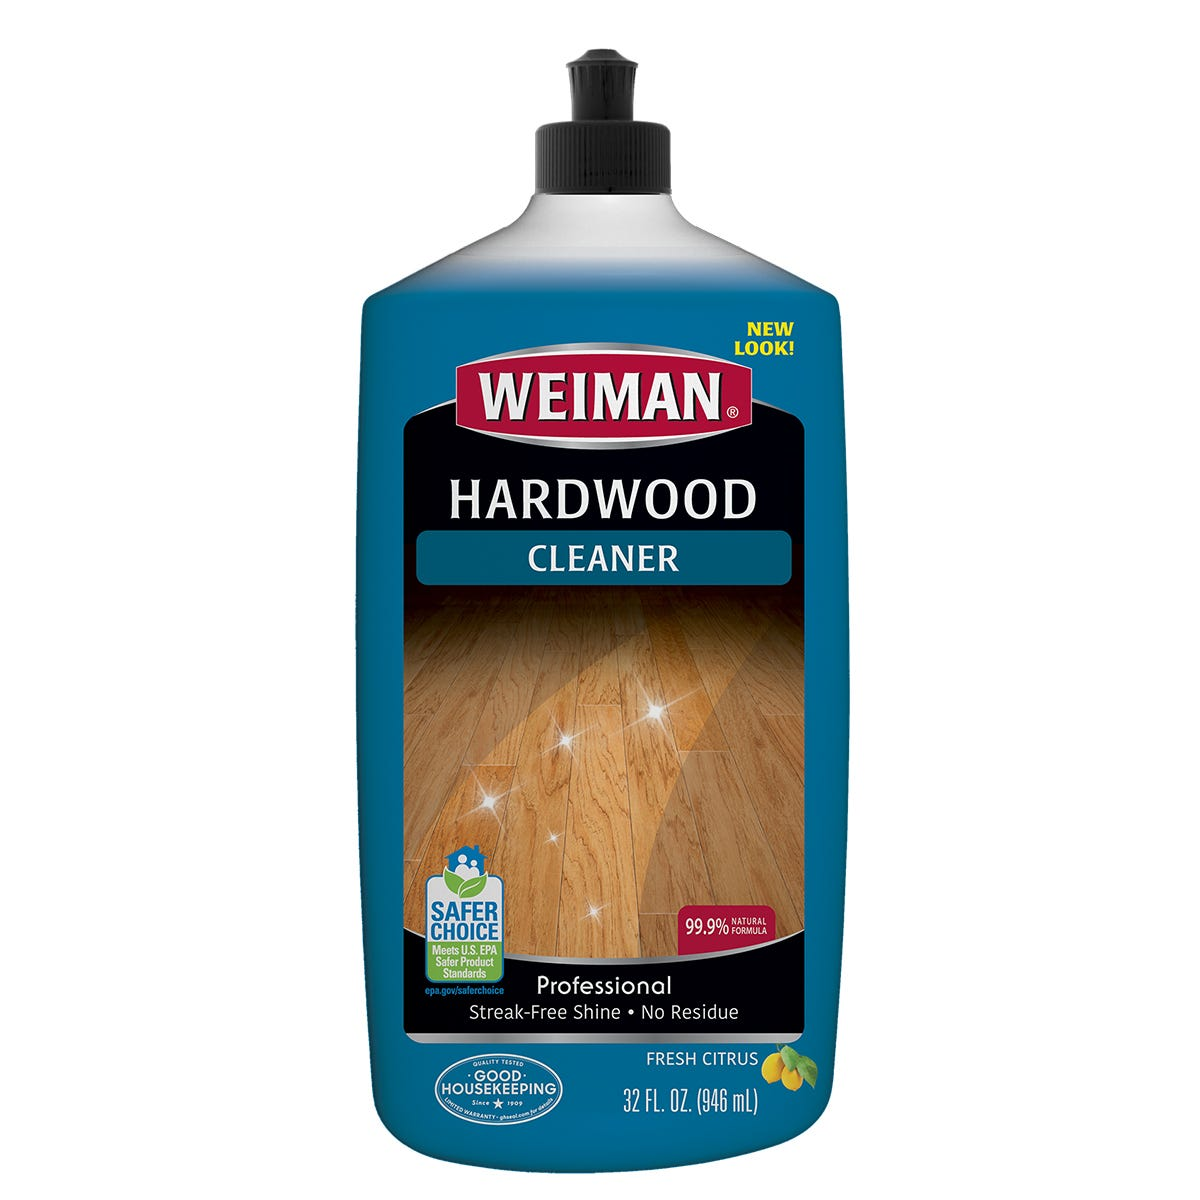 Hardwood Floor Cleaner Weiman